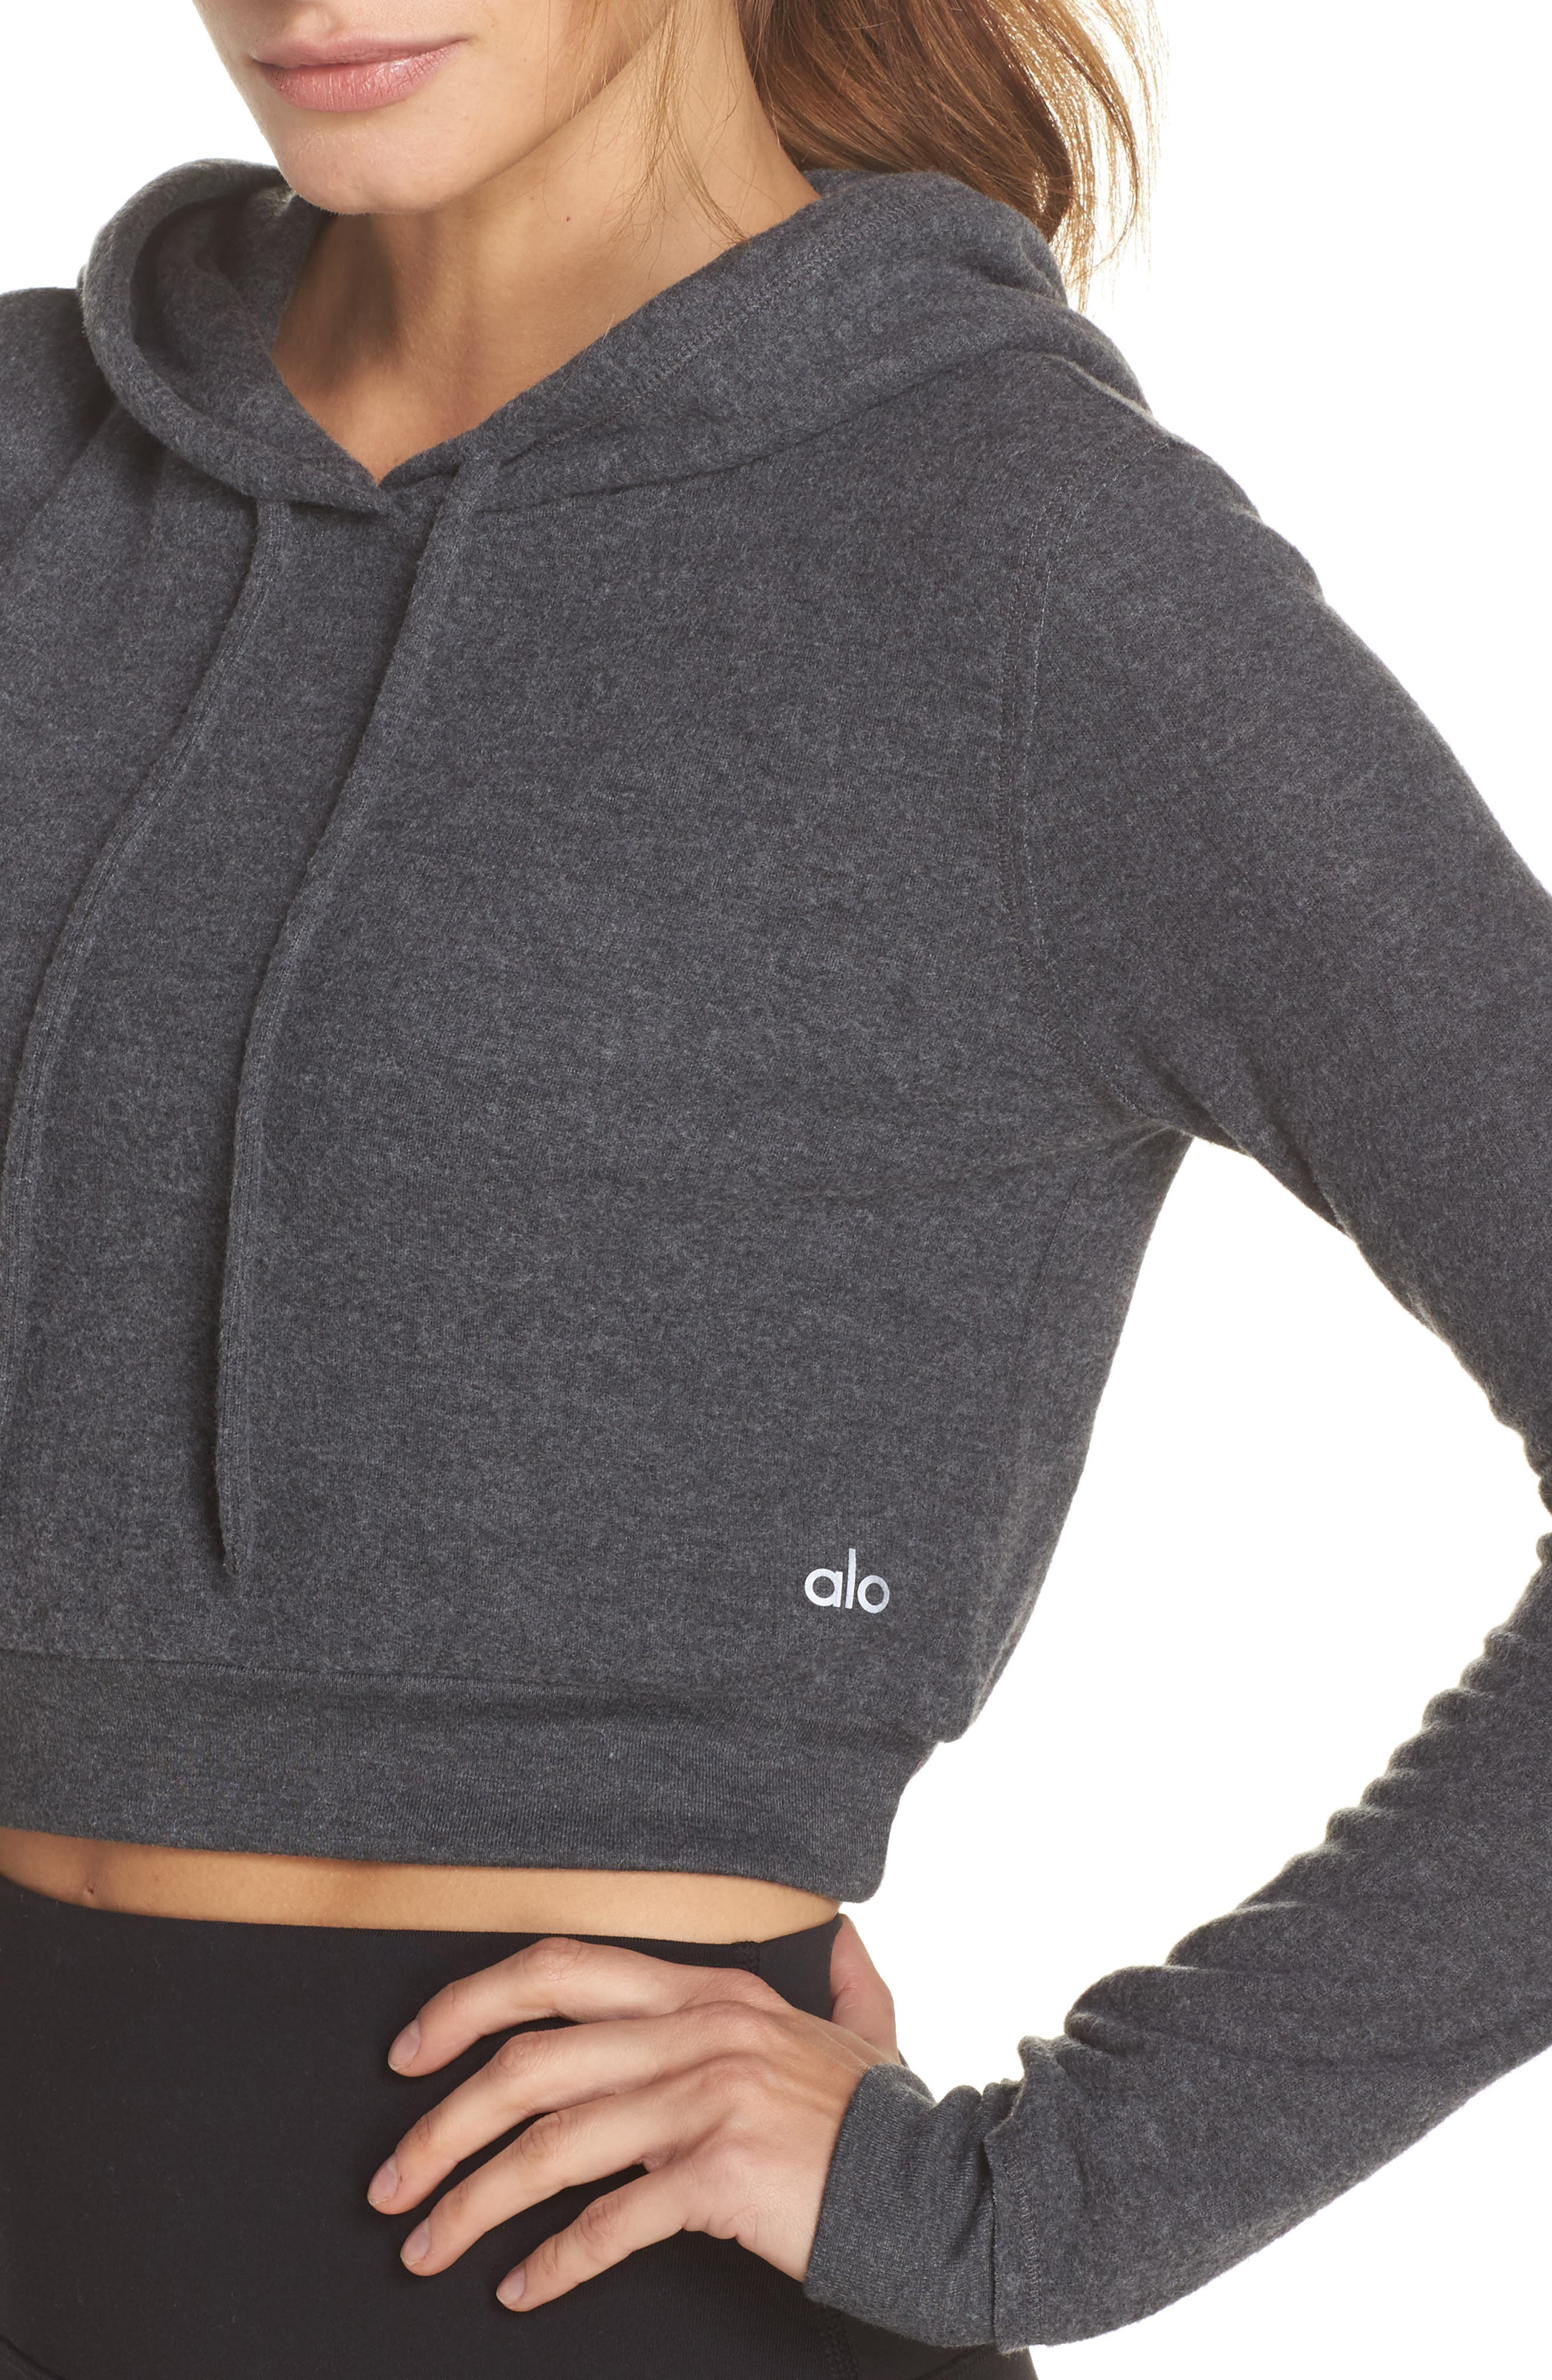 Getaway Hoodie,                             Alternate thumbnail 4, color,                             Anthracite Heather